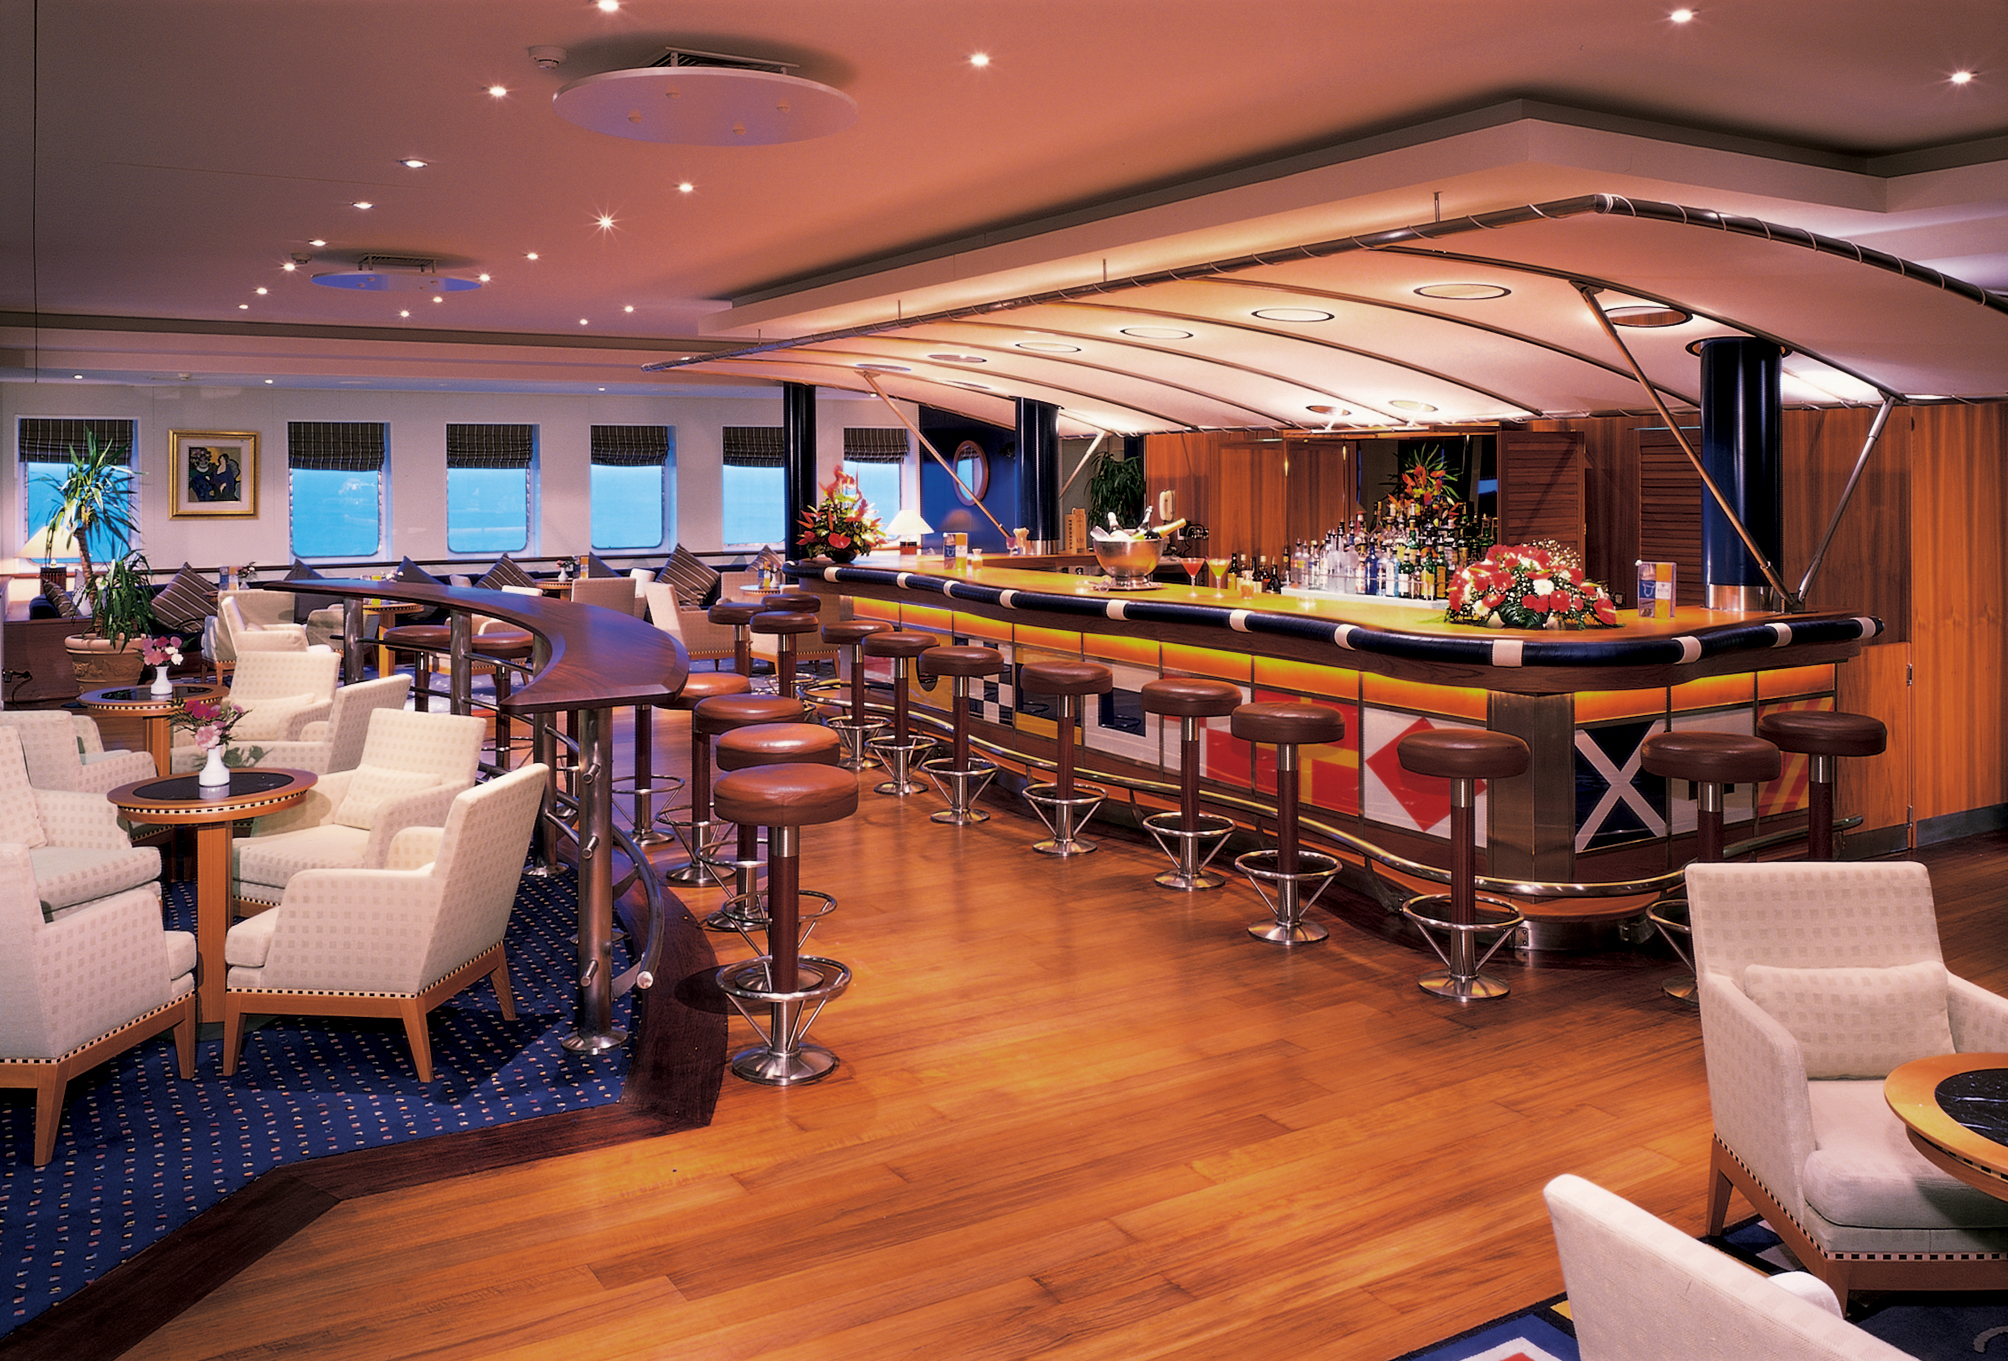 Windstar Wind Surf Interior Lounge Bar 2014.jpg